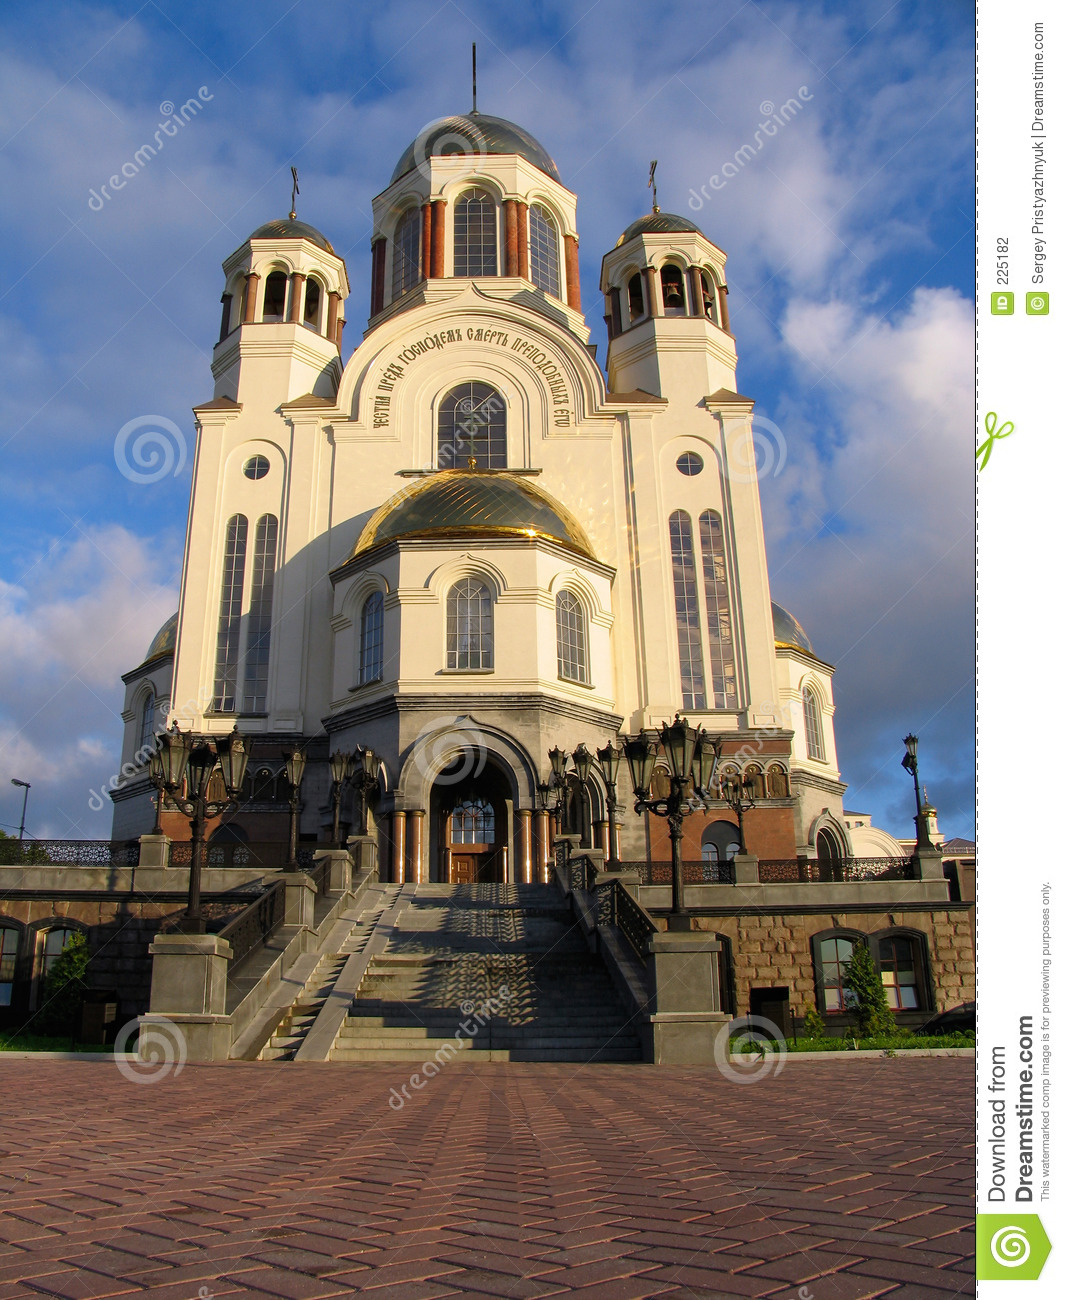 All domkyrka namnger russia saints